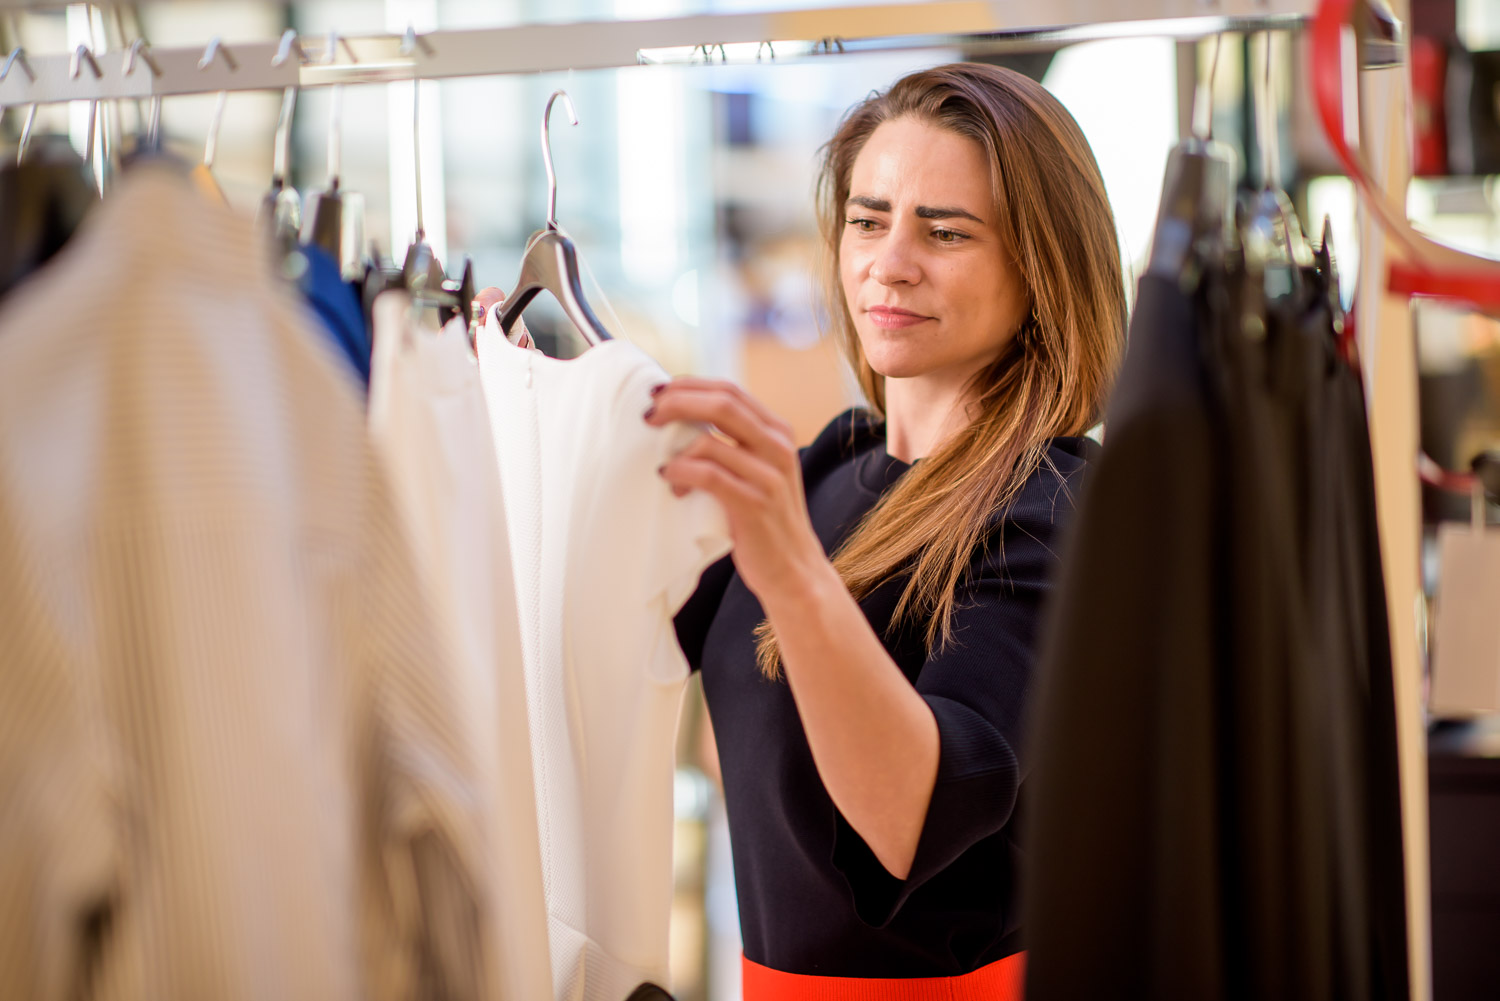 ARE YOUR CLOTHES REFLECTING YOUR PERSONAL BRAND?